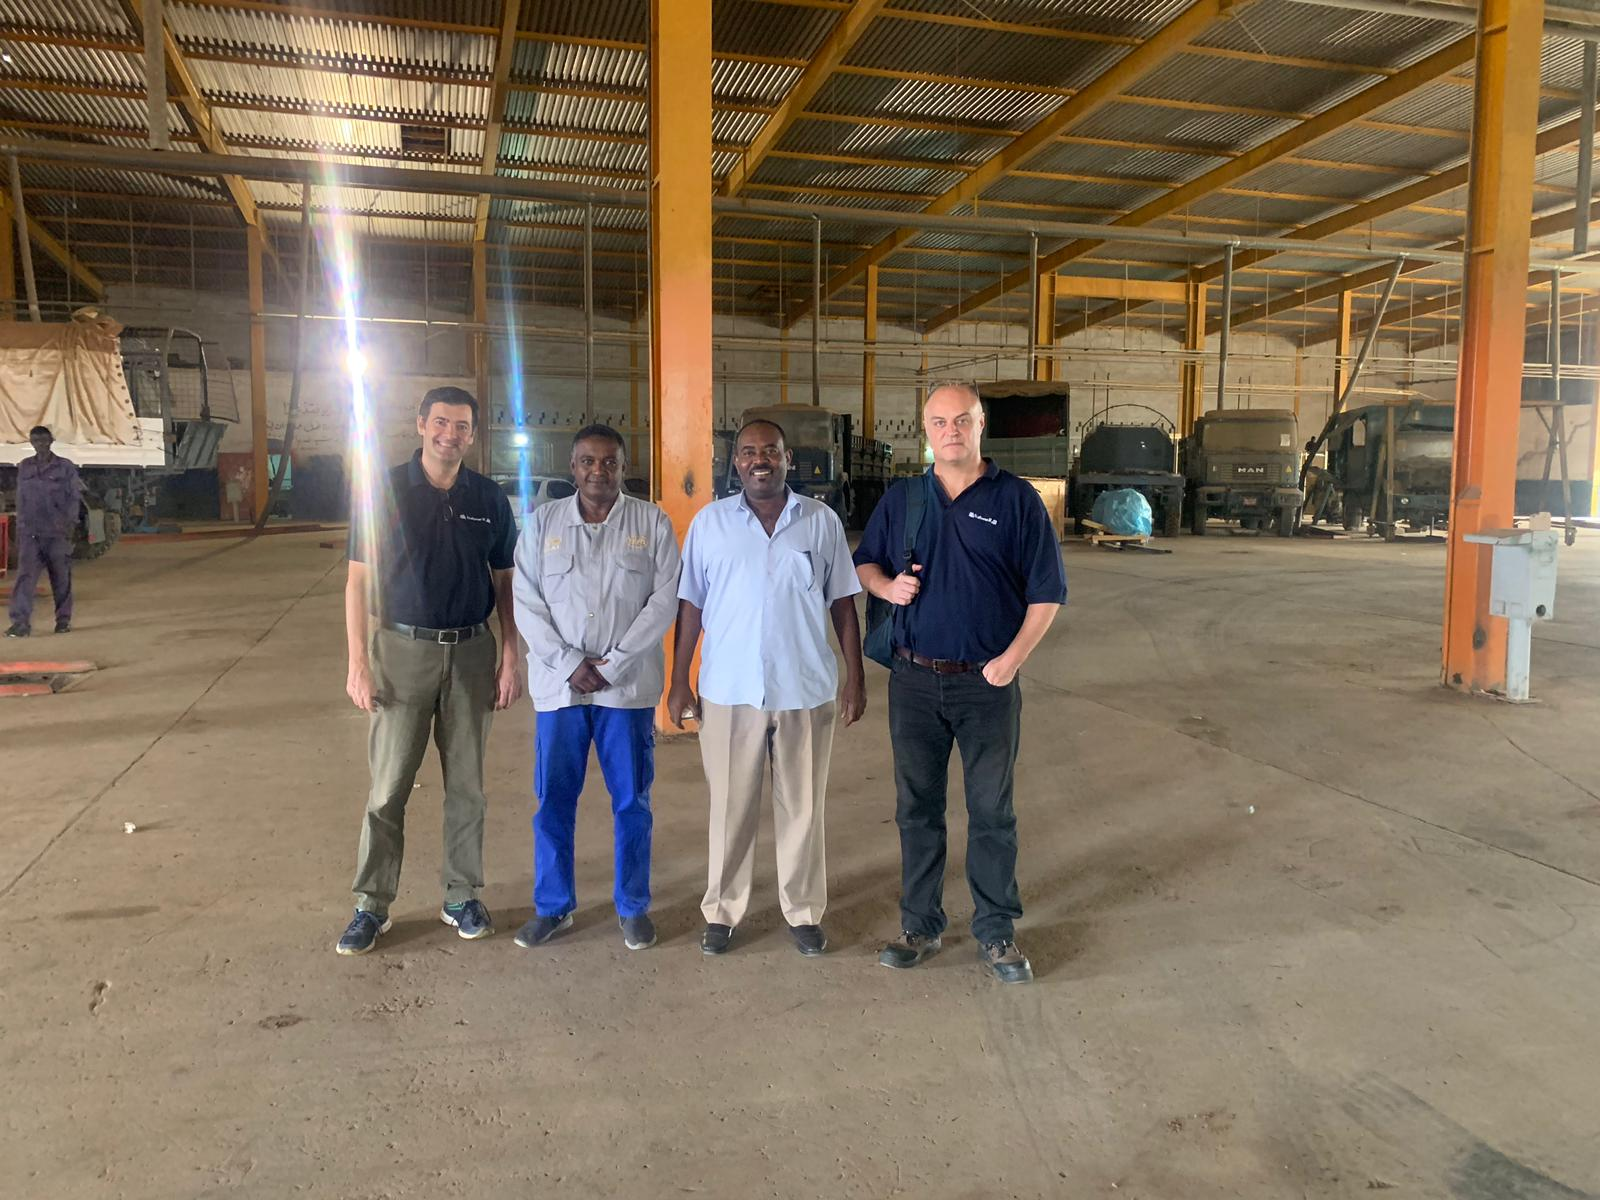 Northern Africa: The team